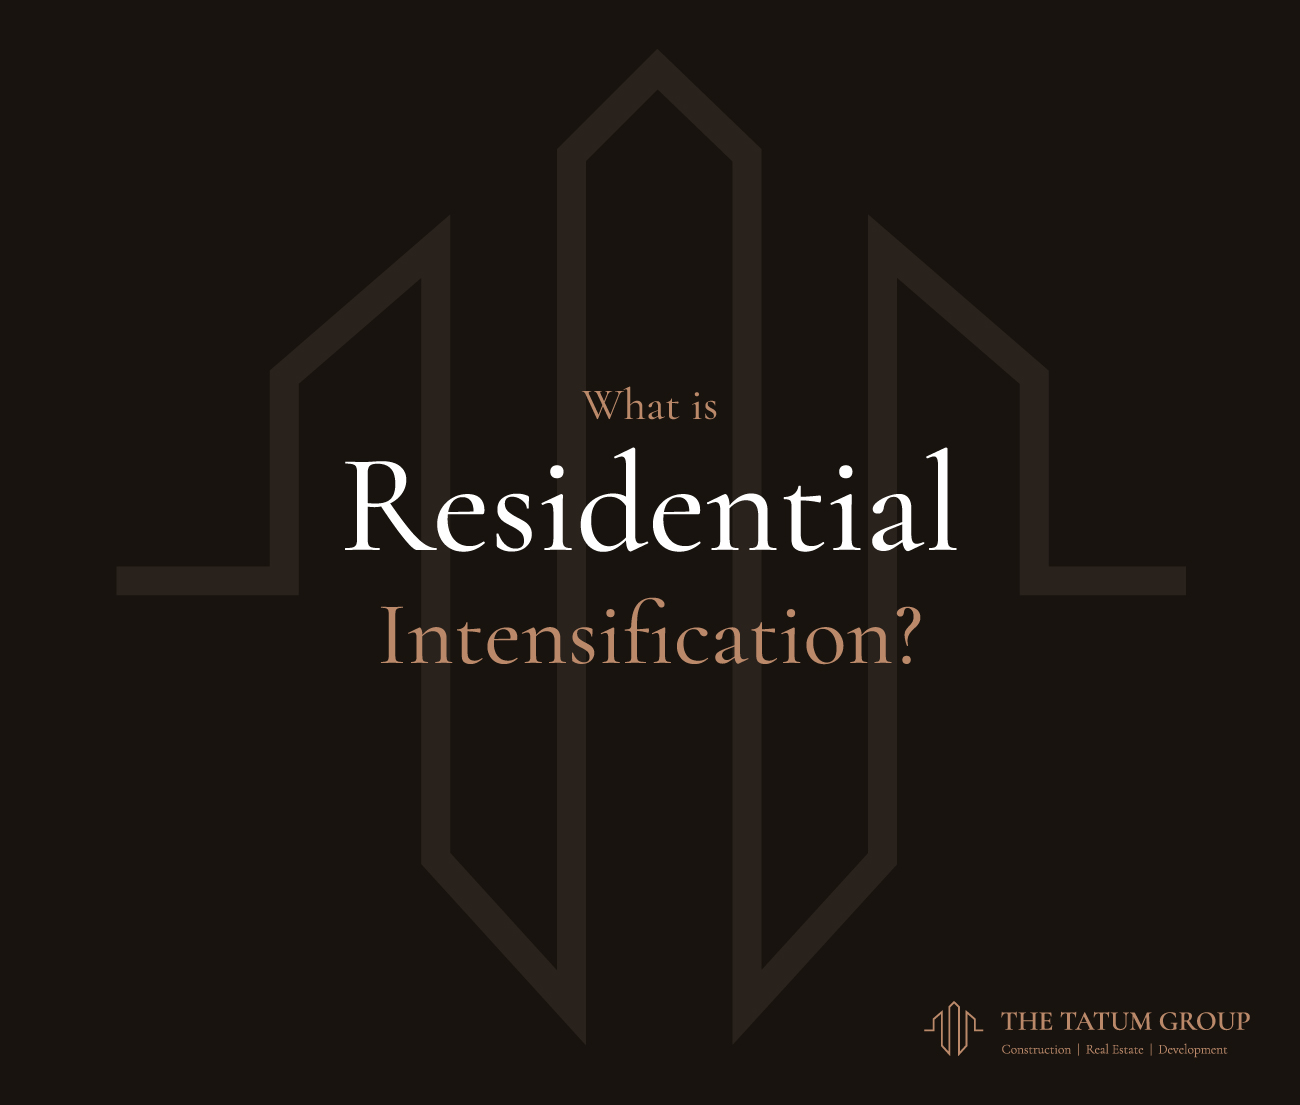 Residential intensification